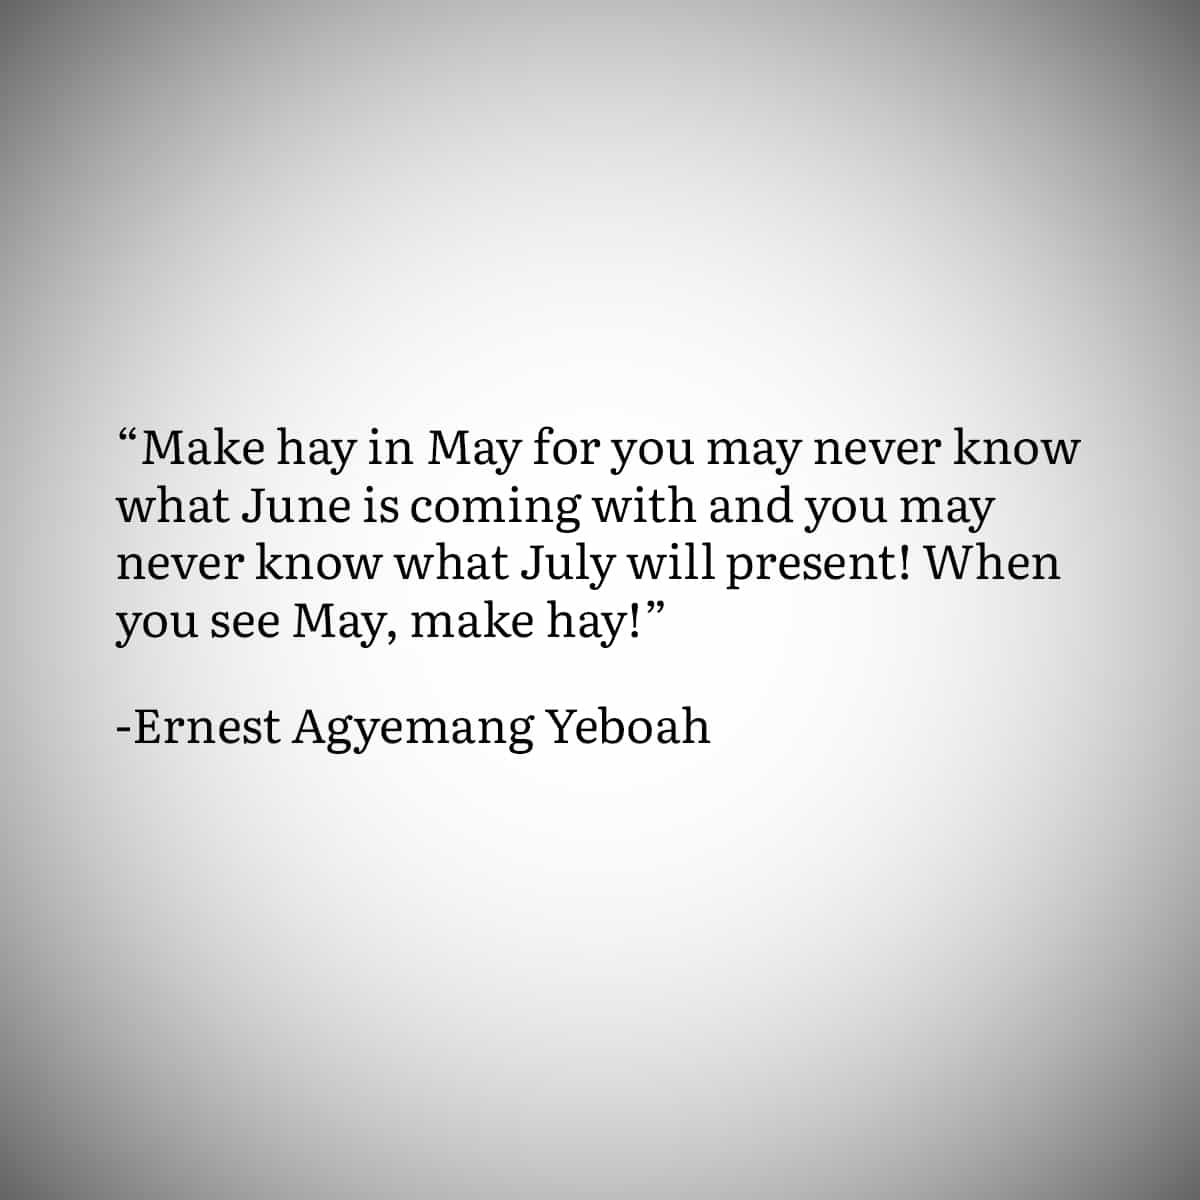 """Broken Heart Quote 10:""""Make hay in may for you may never know what June is coming with and you may never know what July will present! When you see May, make hay!"""" by Ernest Agyamang Yeboah"""